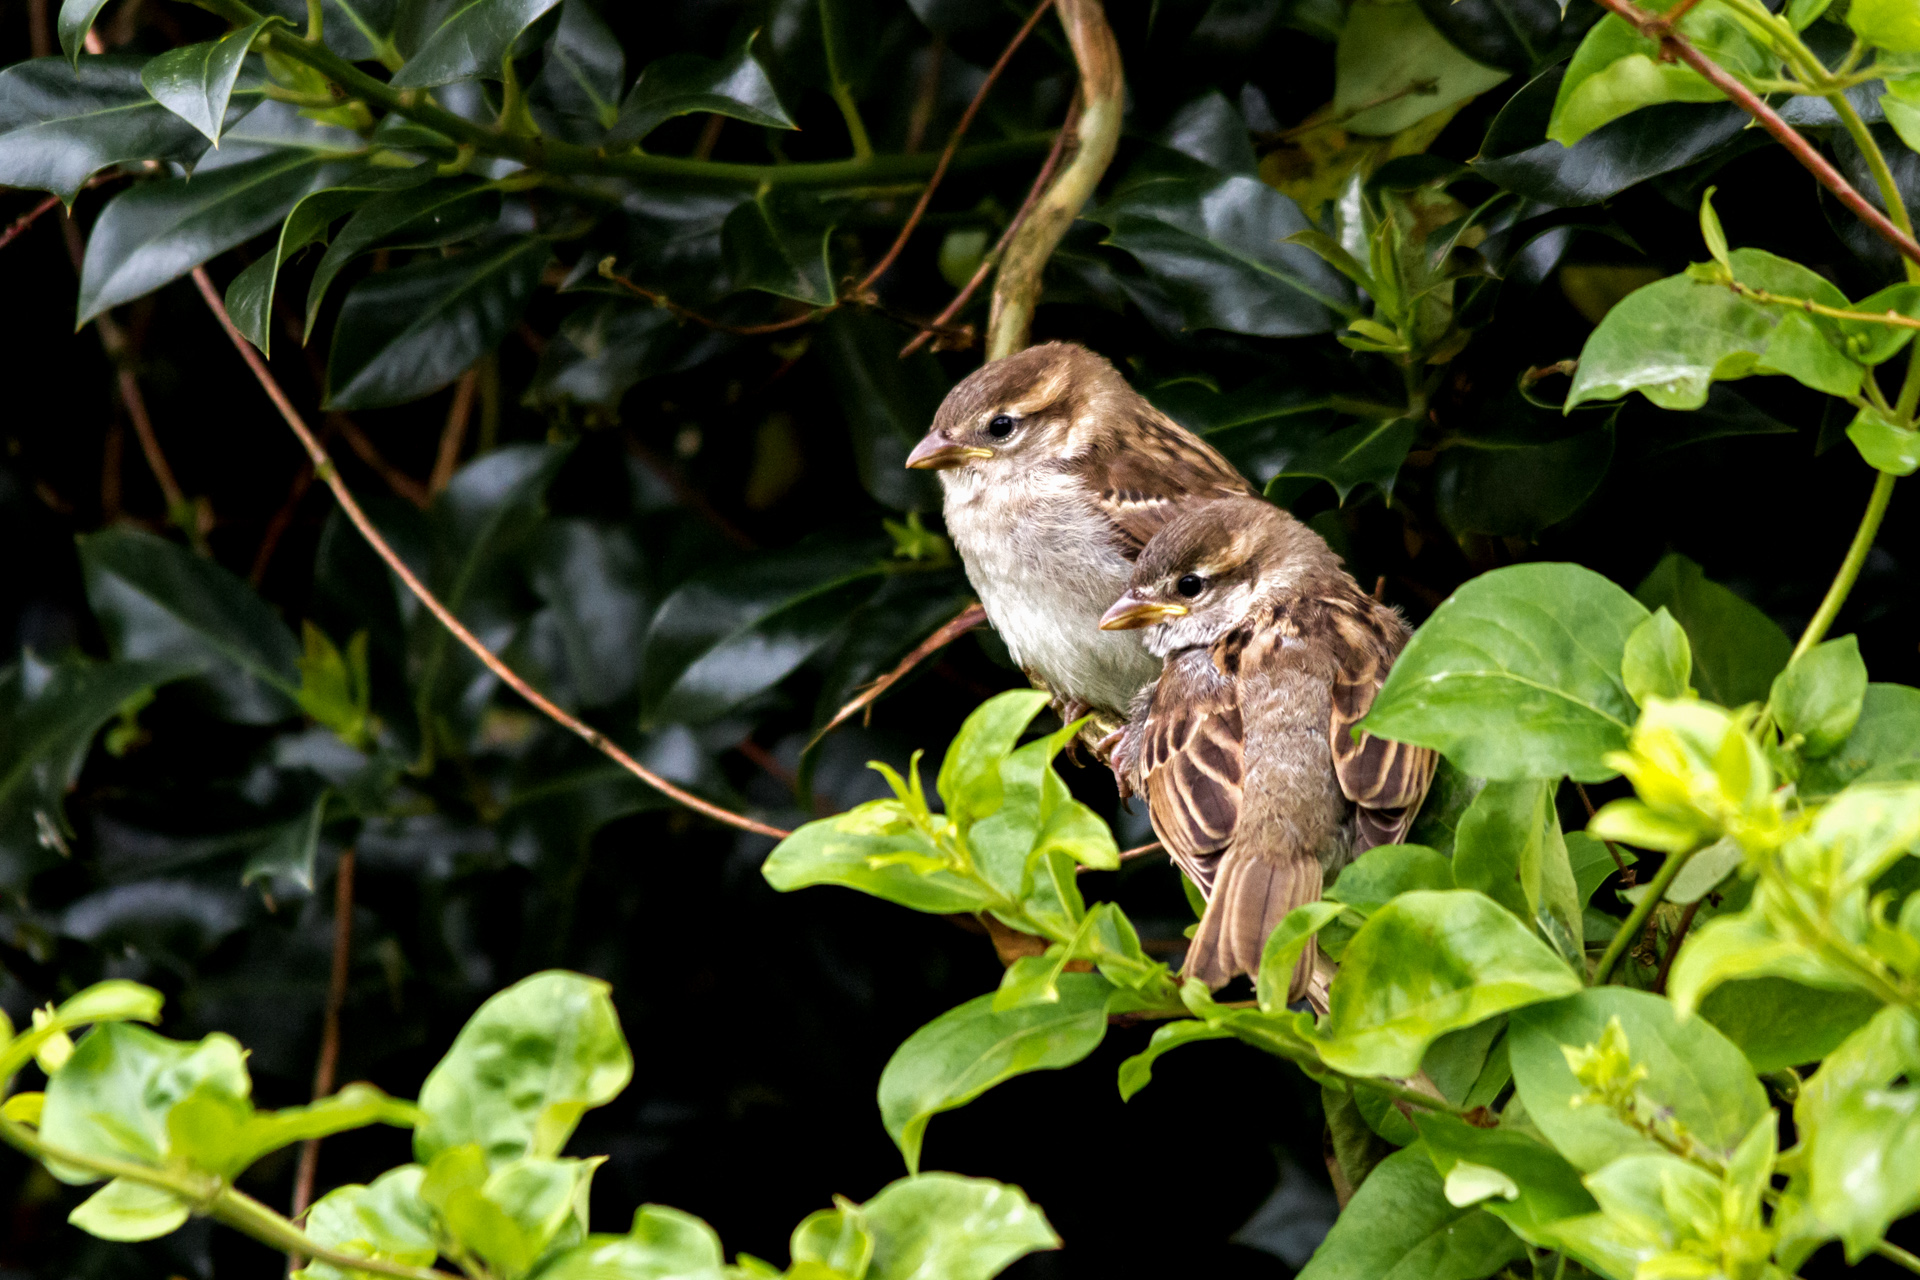 Two young House Sparrows recently fledged sit in the sunlight